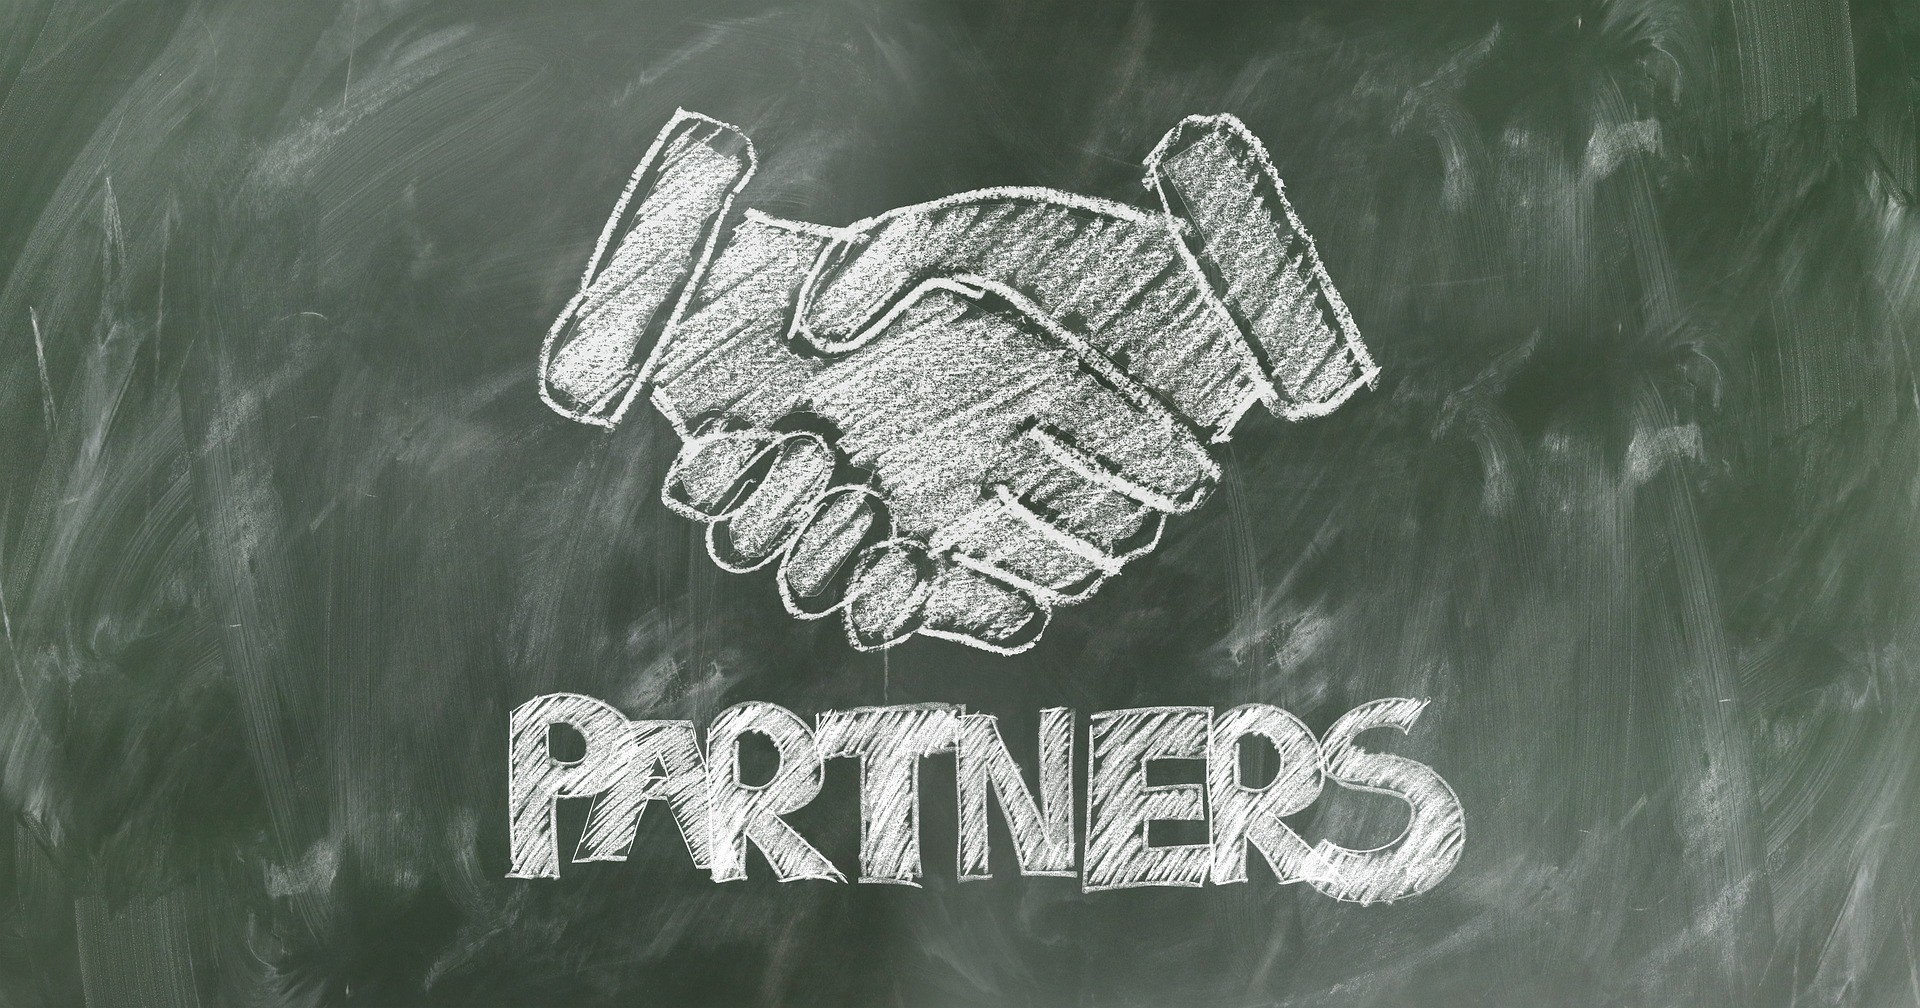 A chalkboard image of shaking hands.